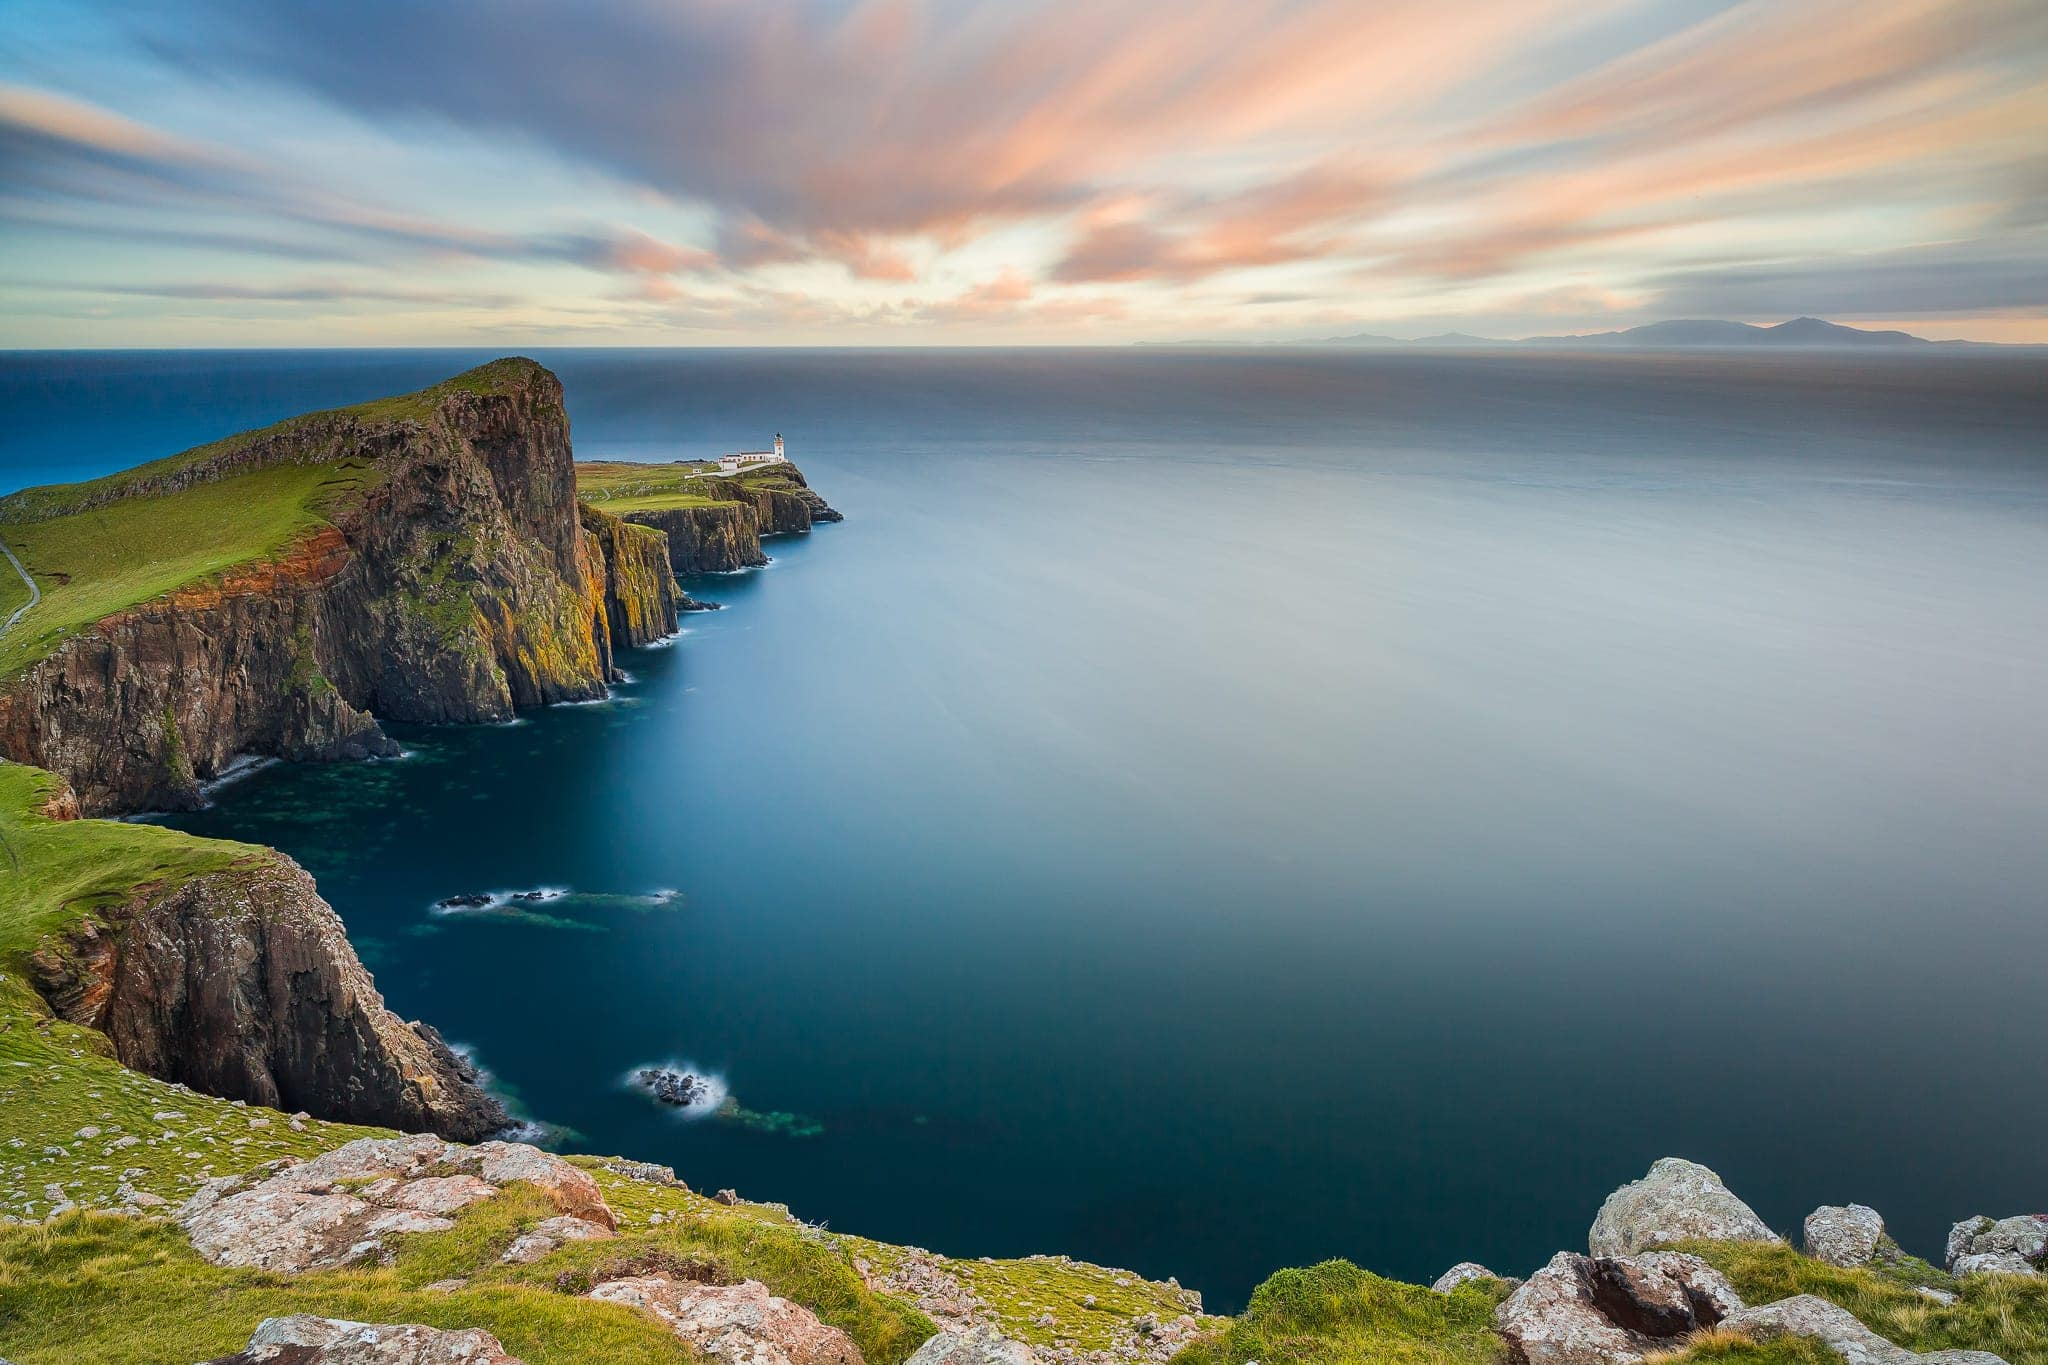 Francesco Gola Seascape Landscape Photography Long Exposure Scotland Skye Neist Point Lighthouse Apple